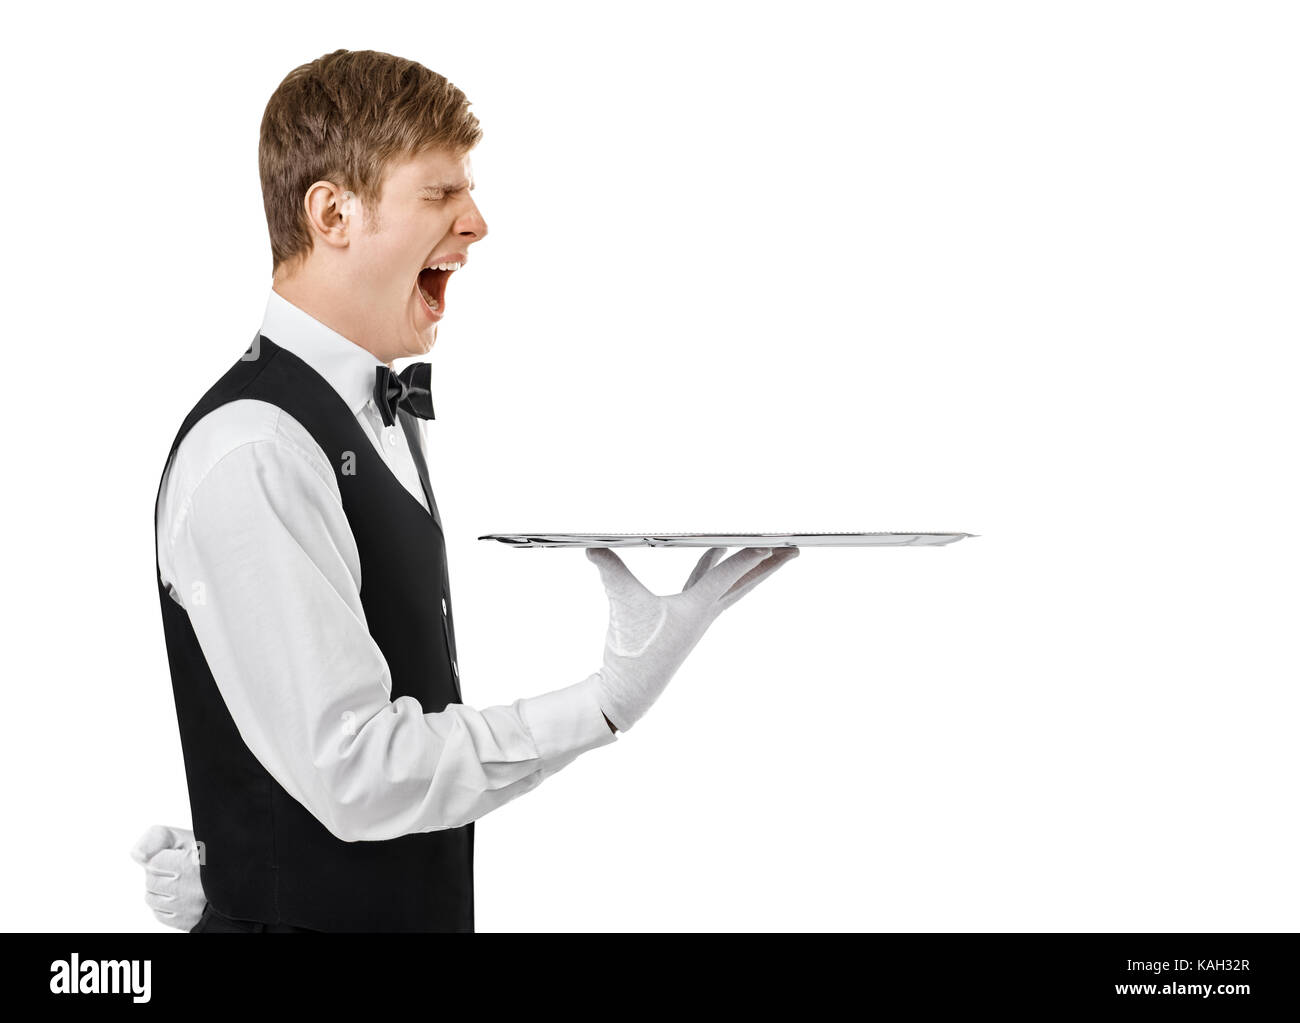 Profile portrait of bored yawning waiter holding empty tray isolated on white background with copy space - Stock Image